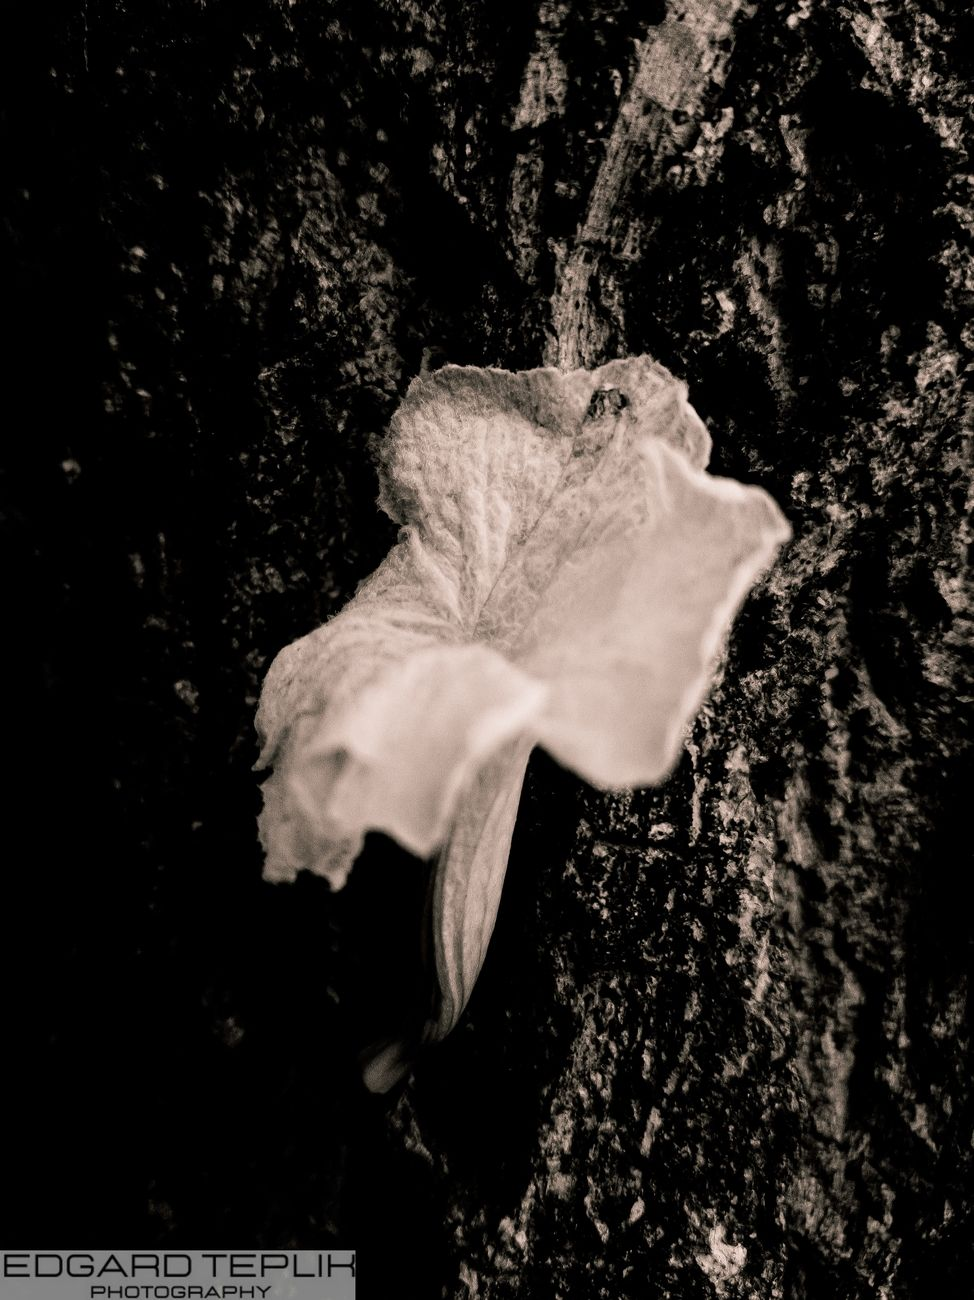 A delicate flower, which fell with the wind, and got stuck in a tree trunk